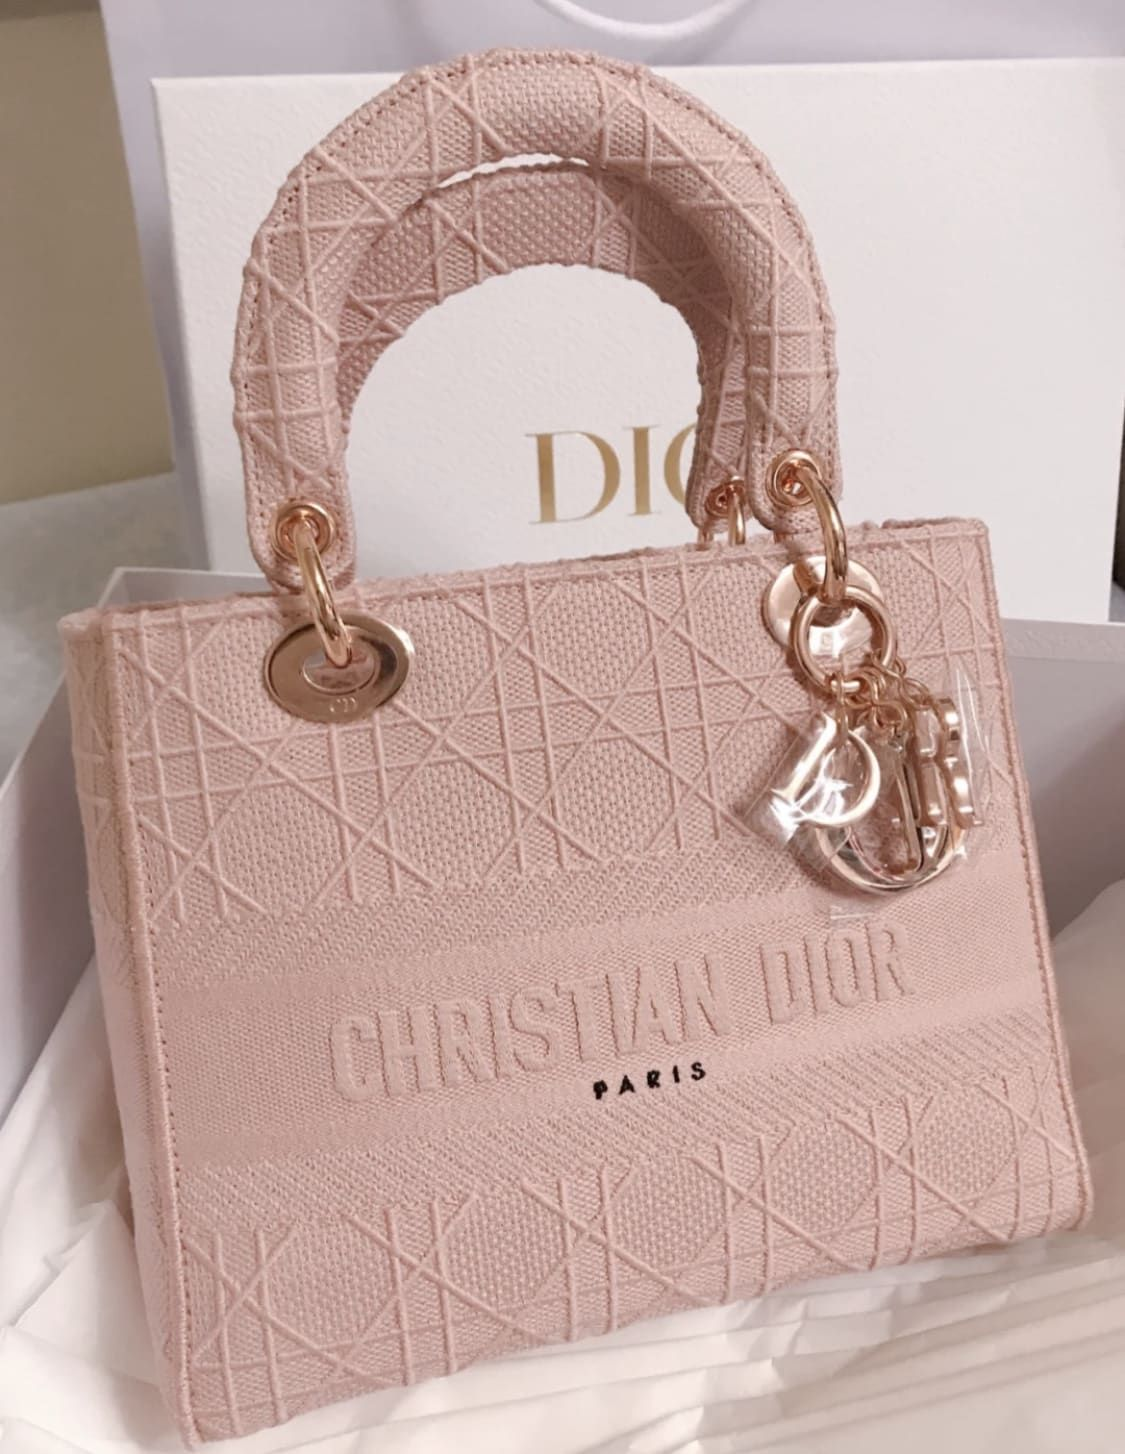 Lady dior in pink embroidered canvas